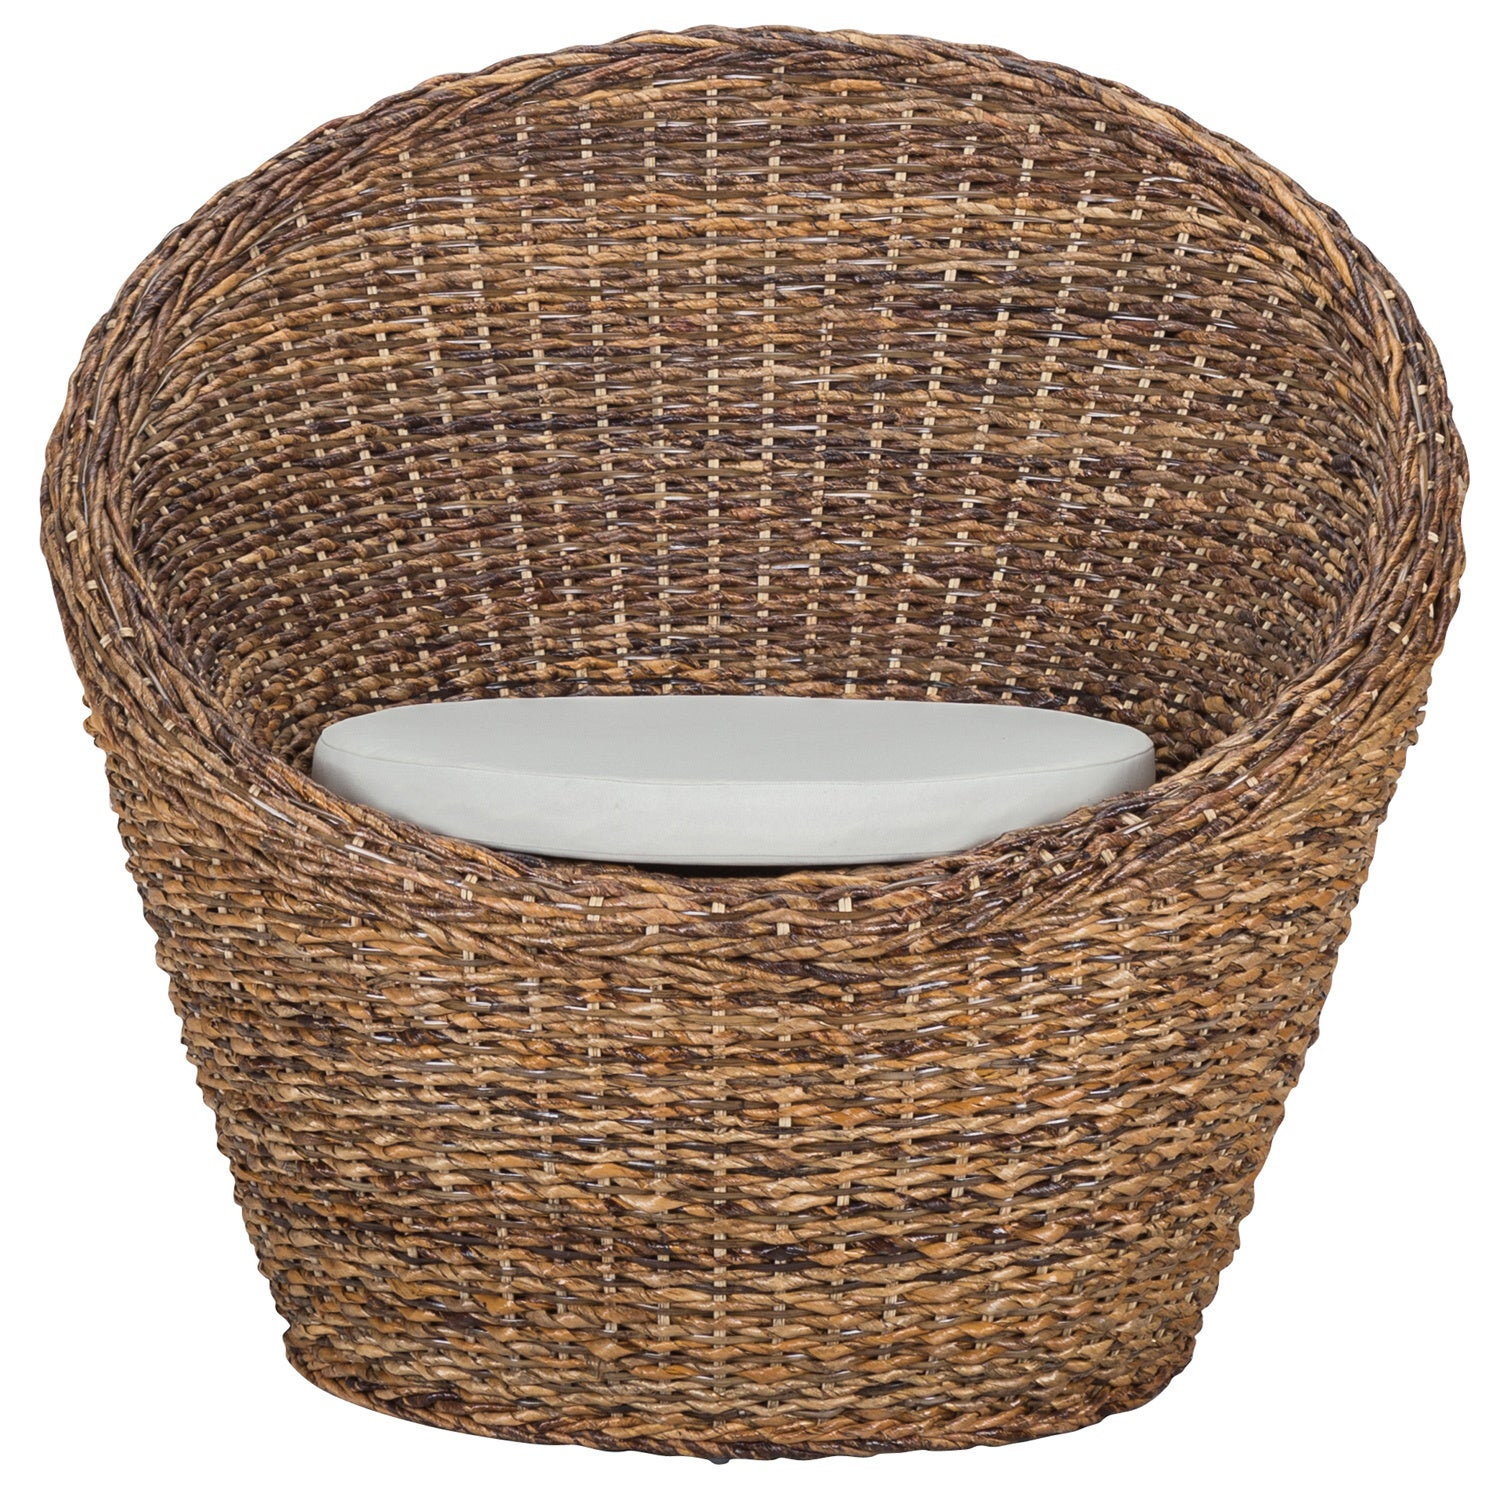 Shop Gia Hand Woven Rattan Chair By Kosas Home   Free Shipping Today    Overstock.com   11721880